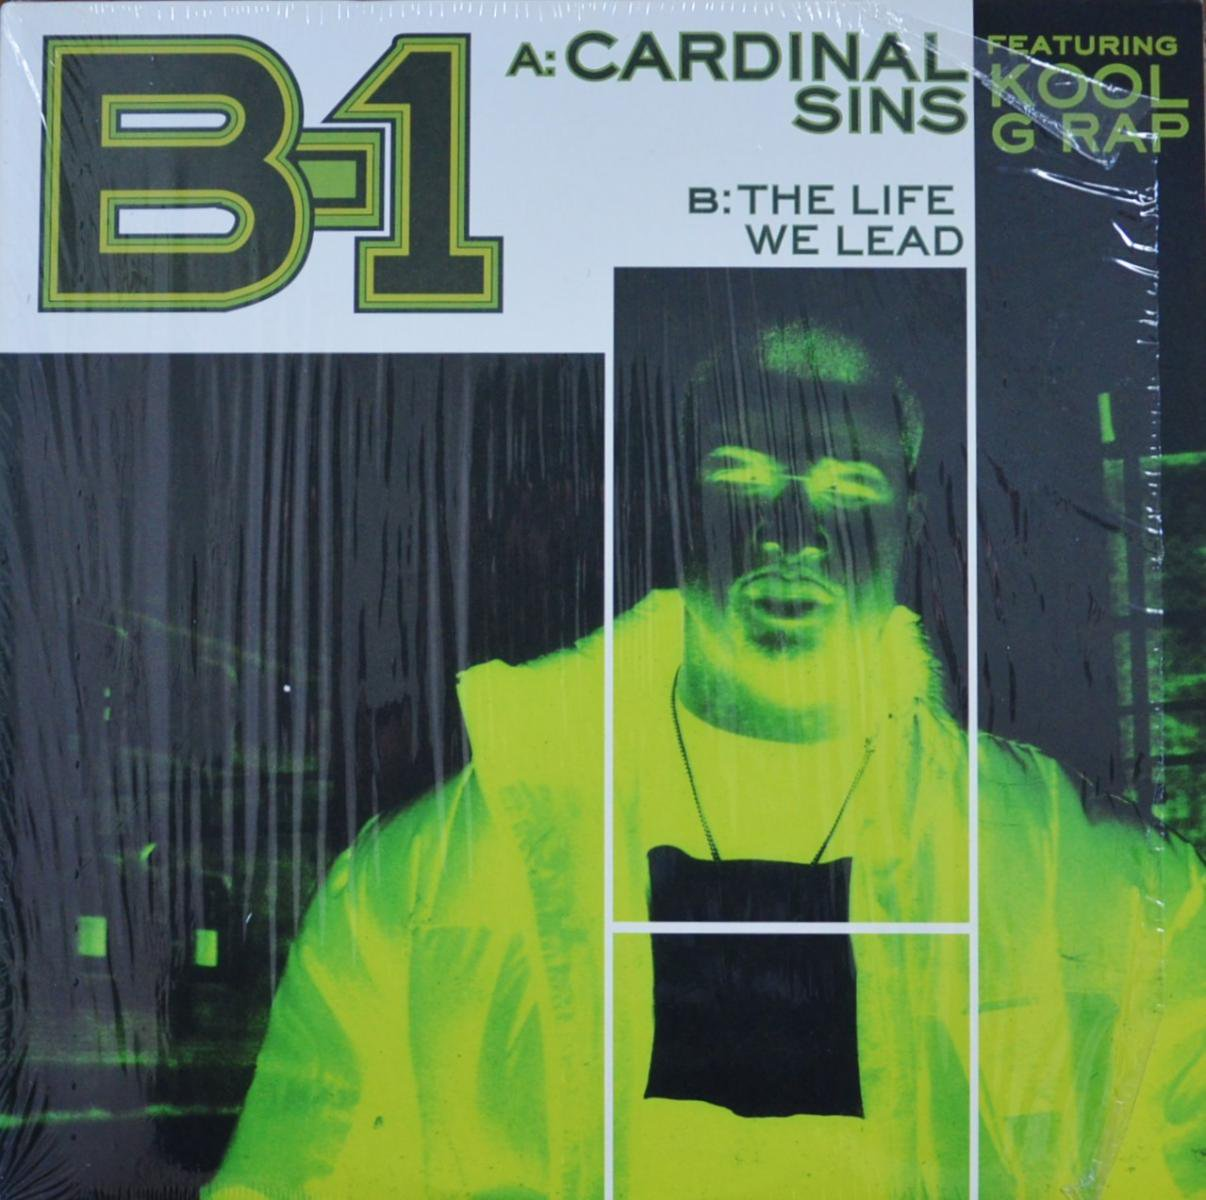 B-1 FEATURING KOOL G RAP / CARDINAL SINS / THE LIFE WE LEAD (MIXED BY LARGE PROFESSOR) (12